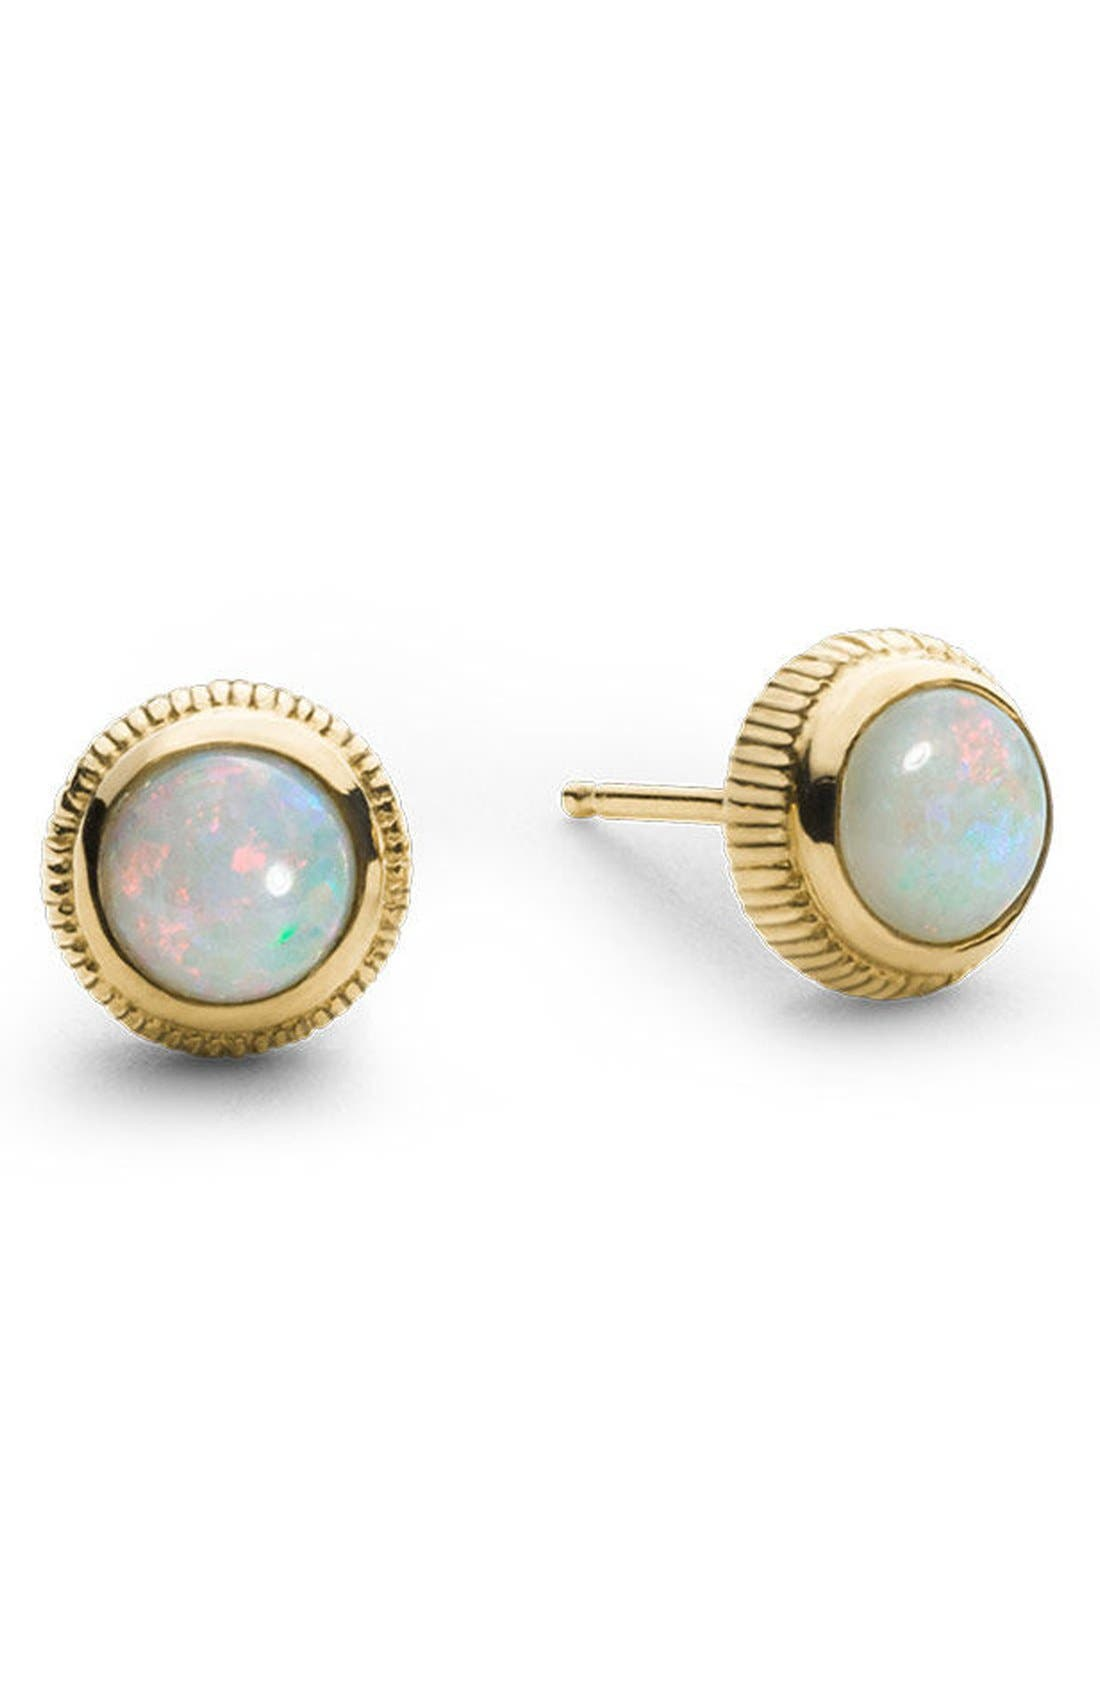 Main Image - Shinola Opal Stud Earrings